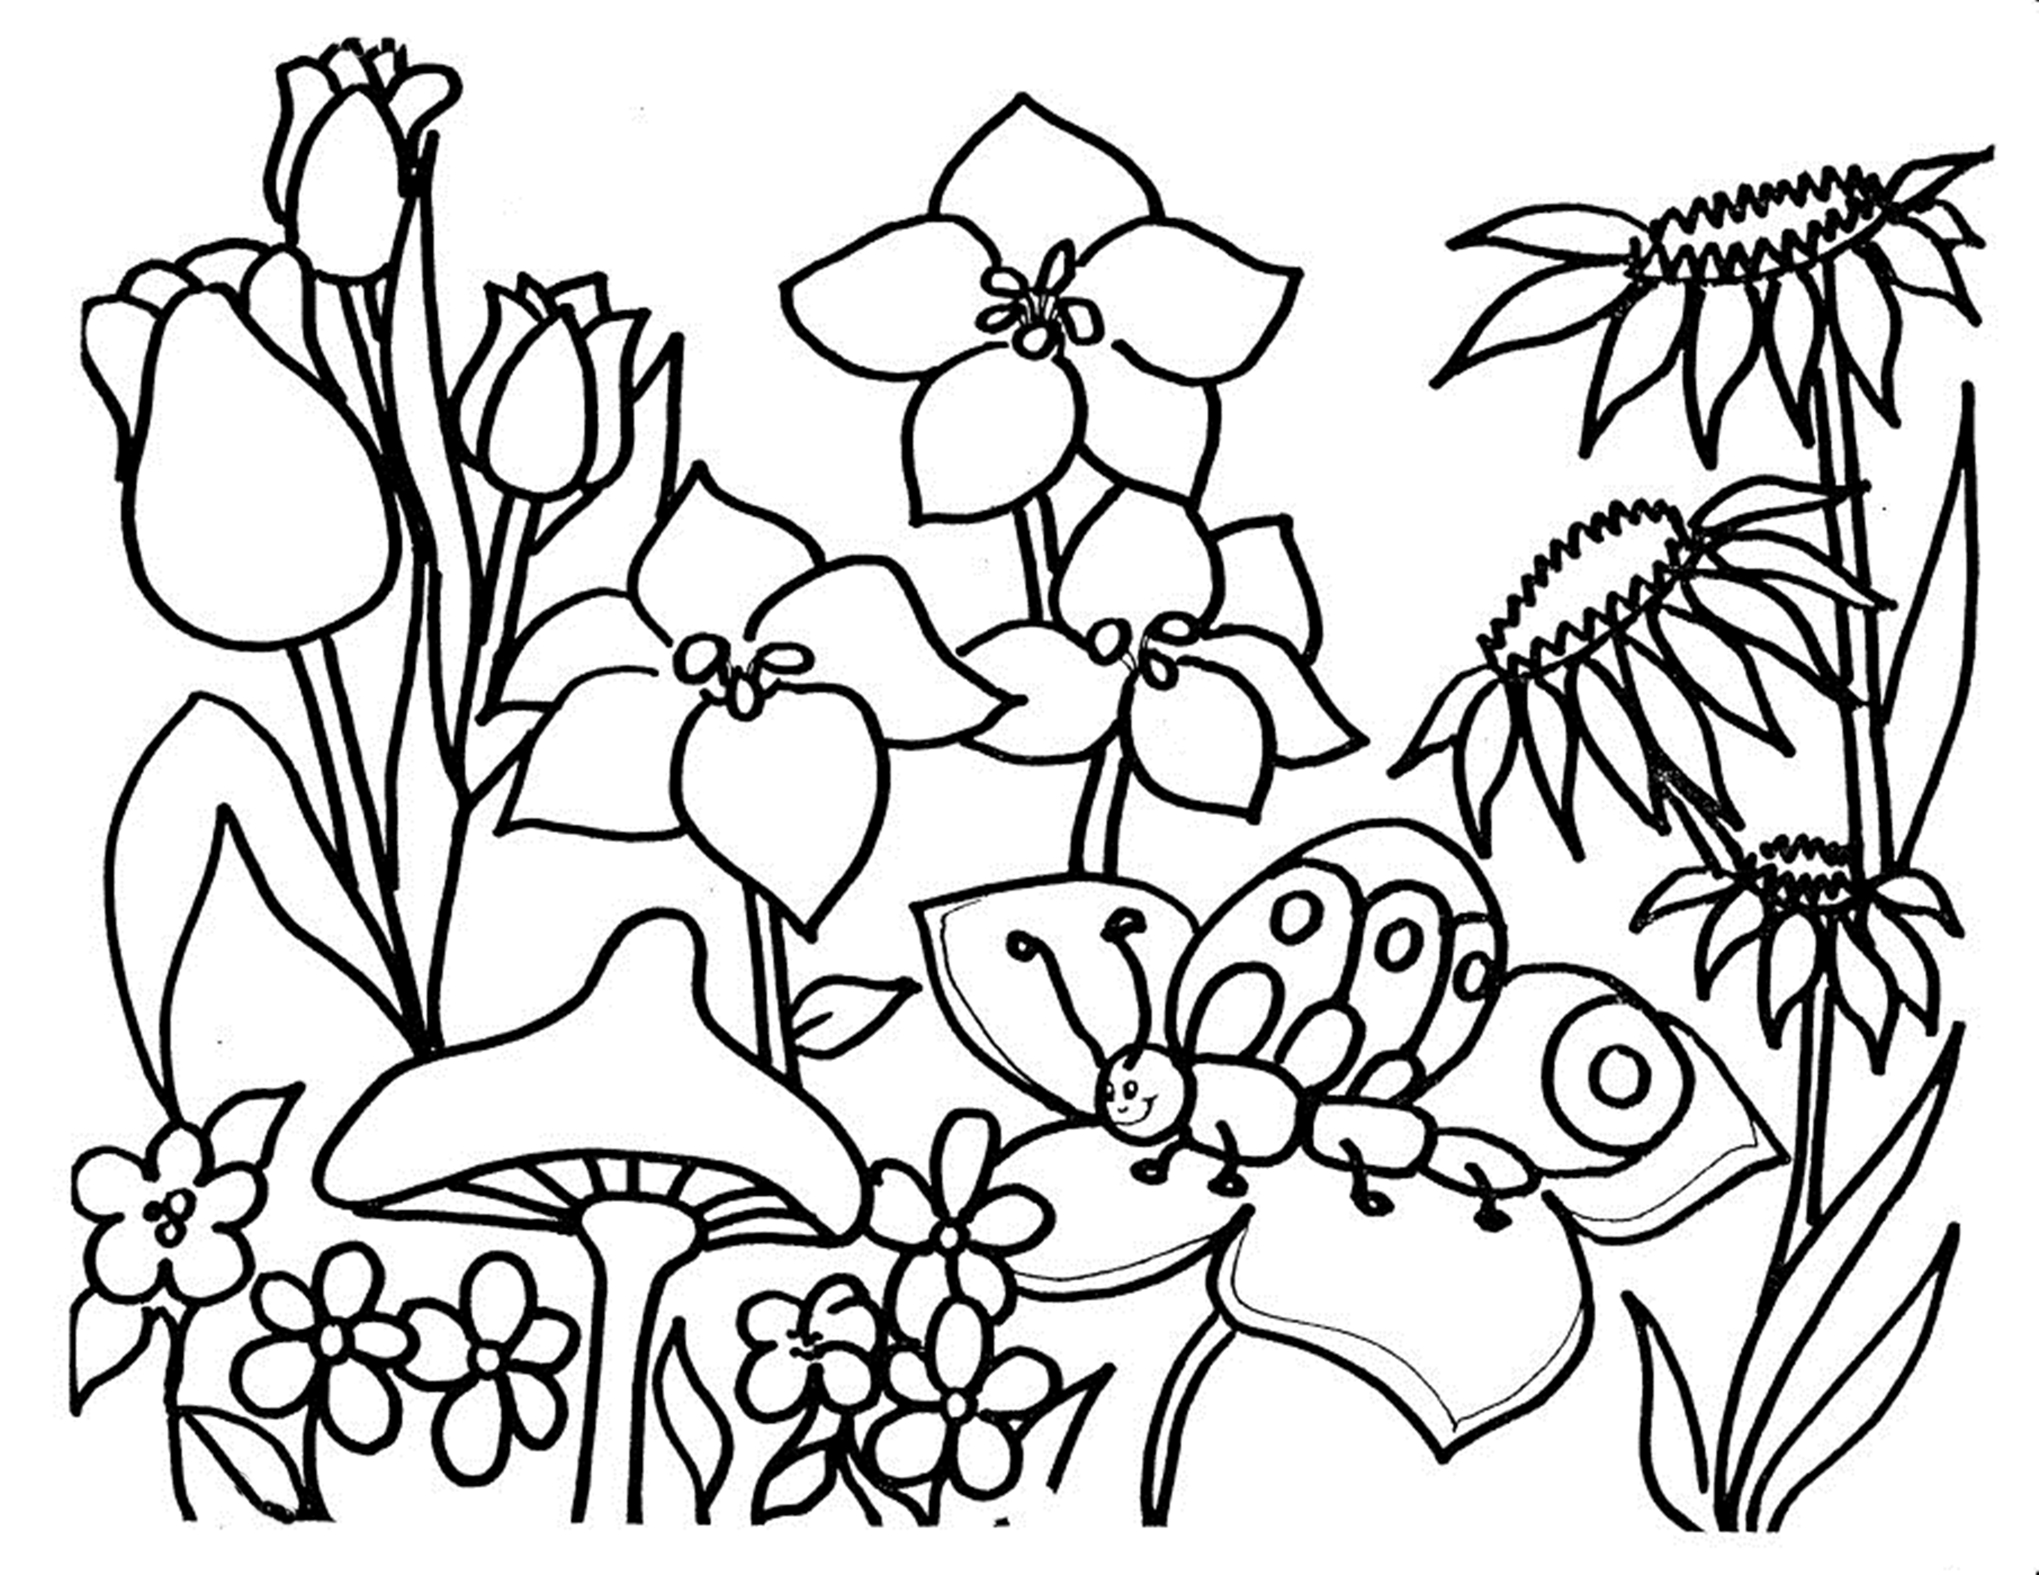 Genial Pictures For Coloring Flowers